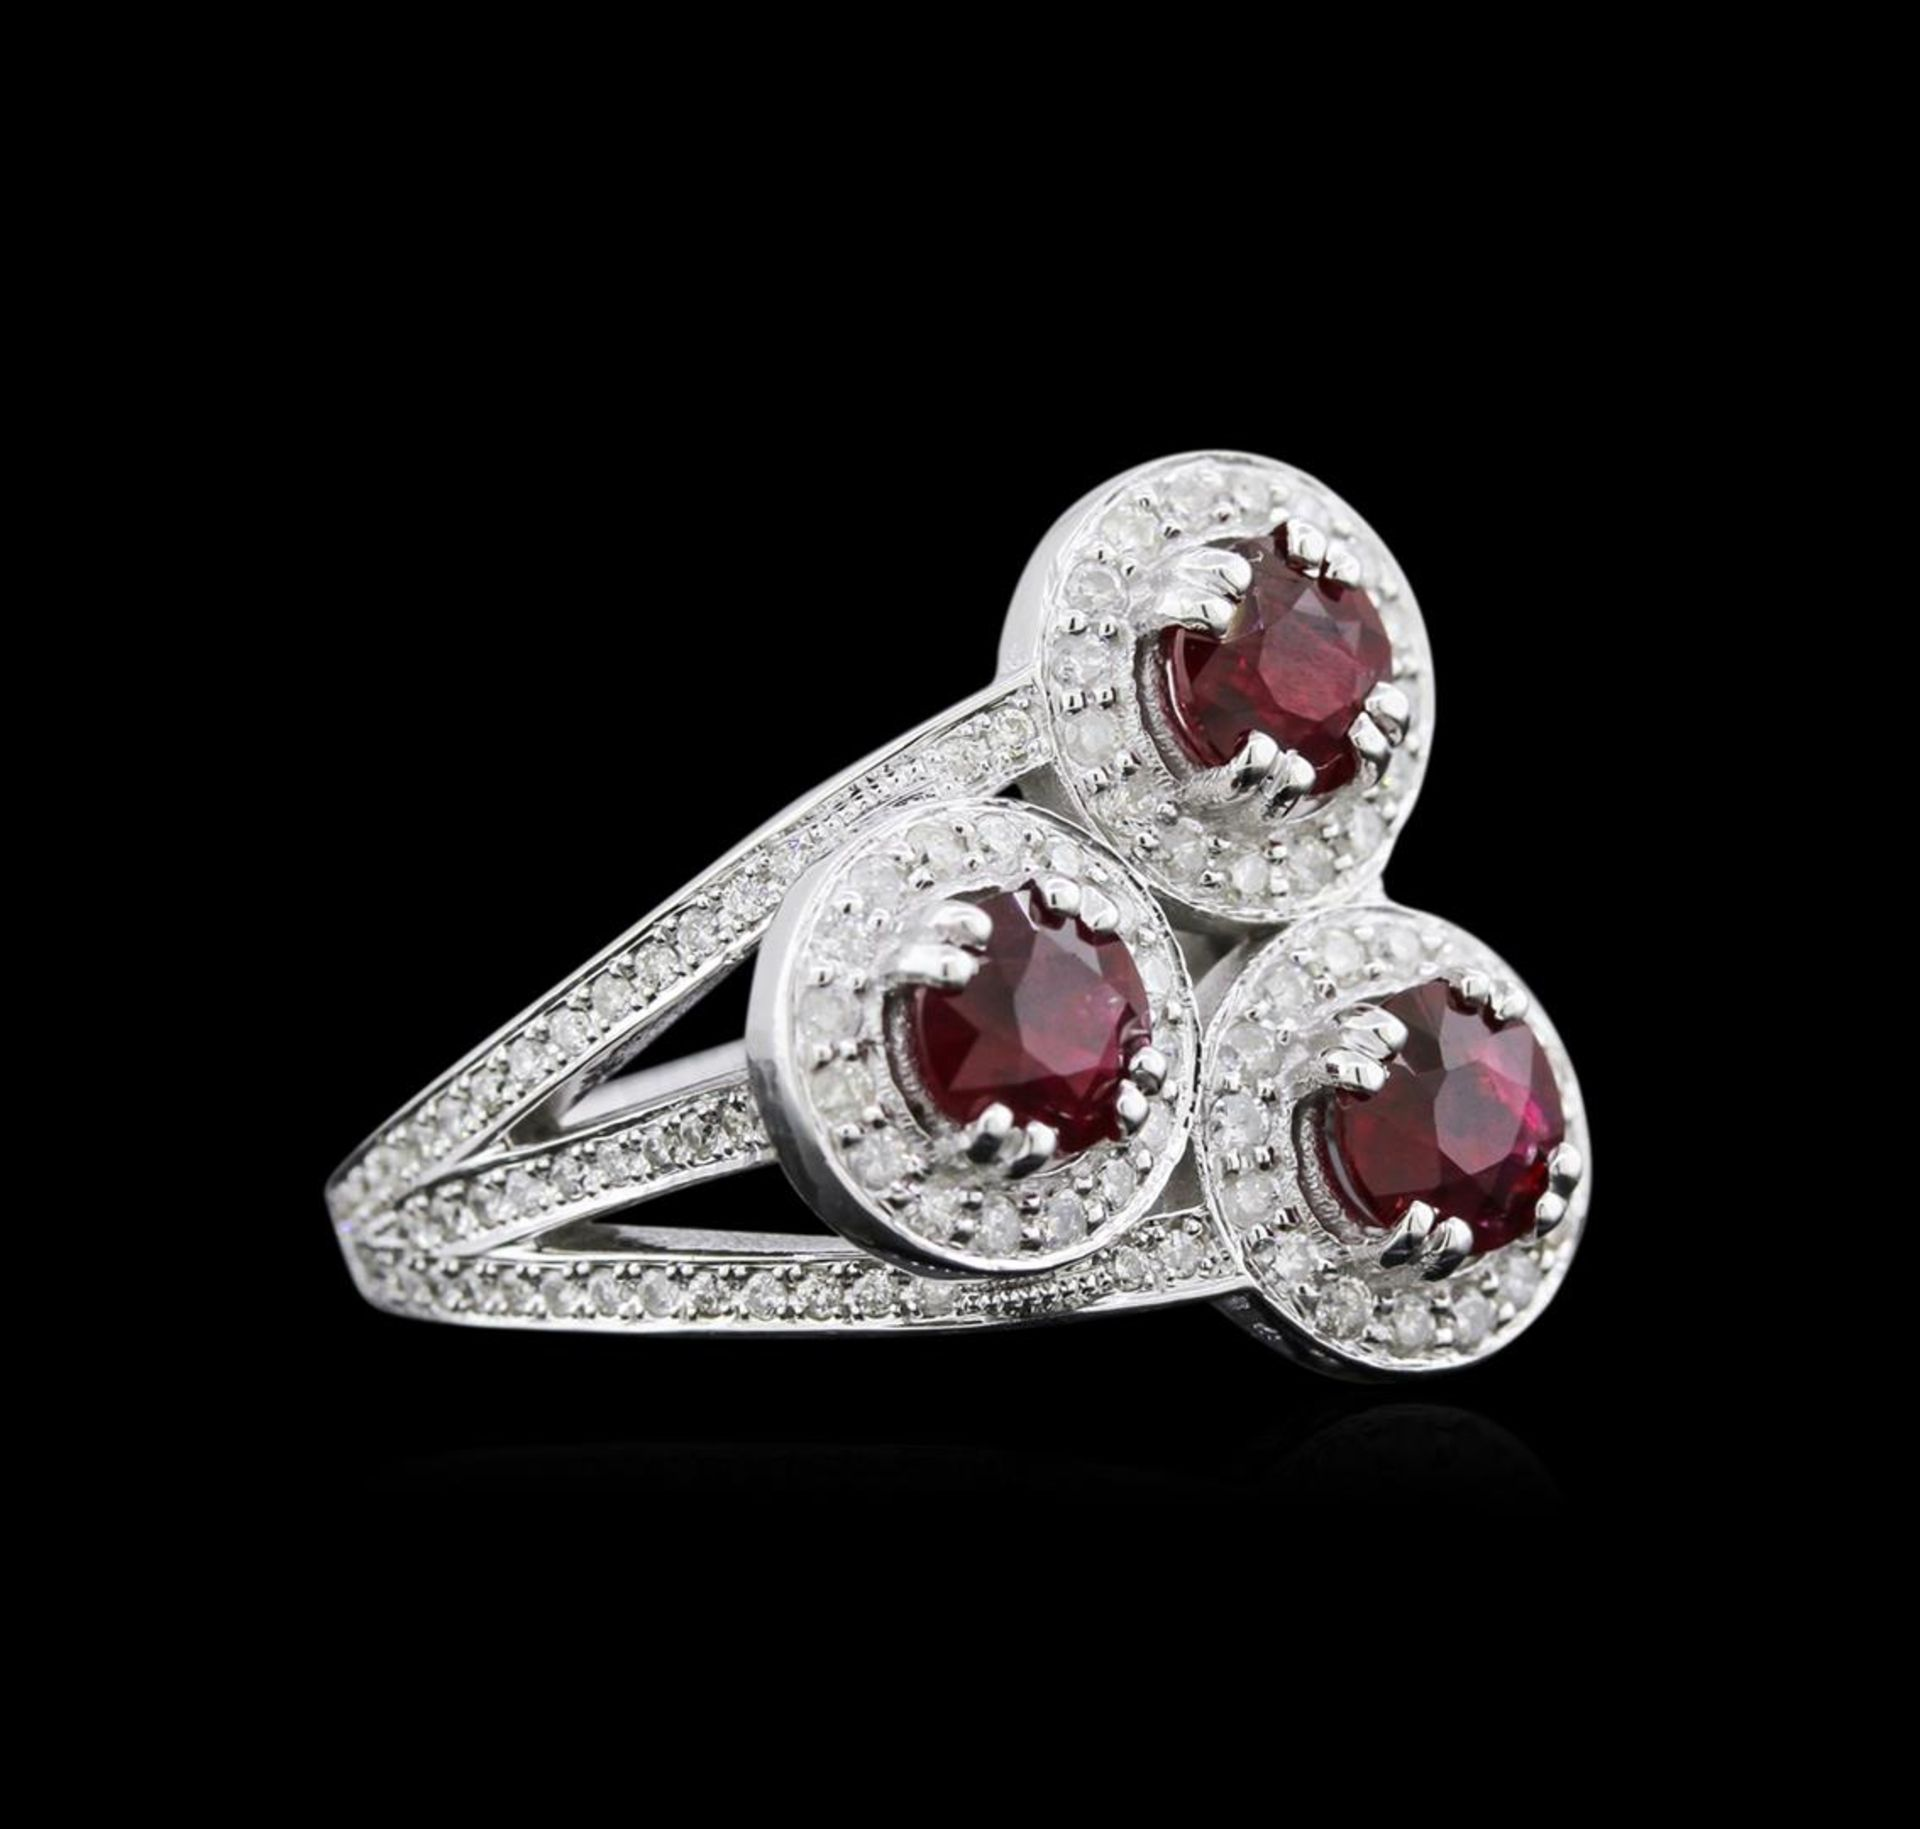 2.64ctw Ruby and Diamond Ring - 14KT White Gold